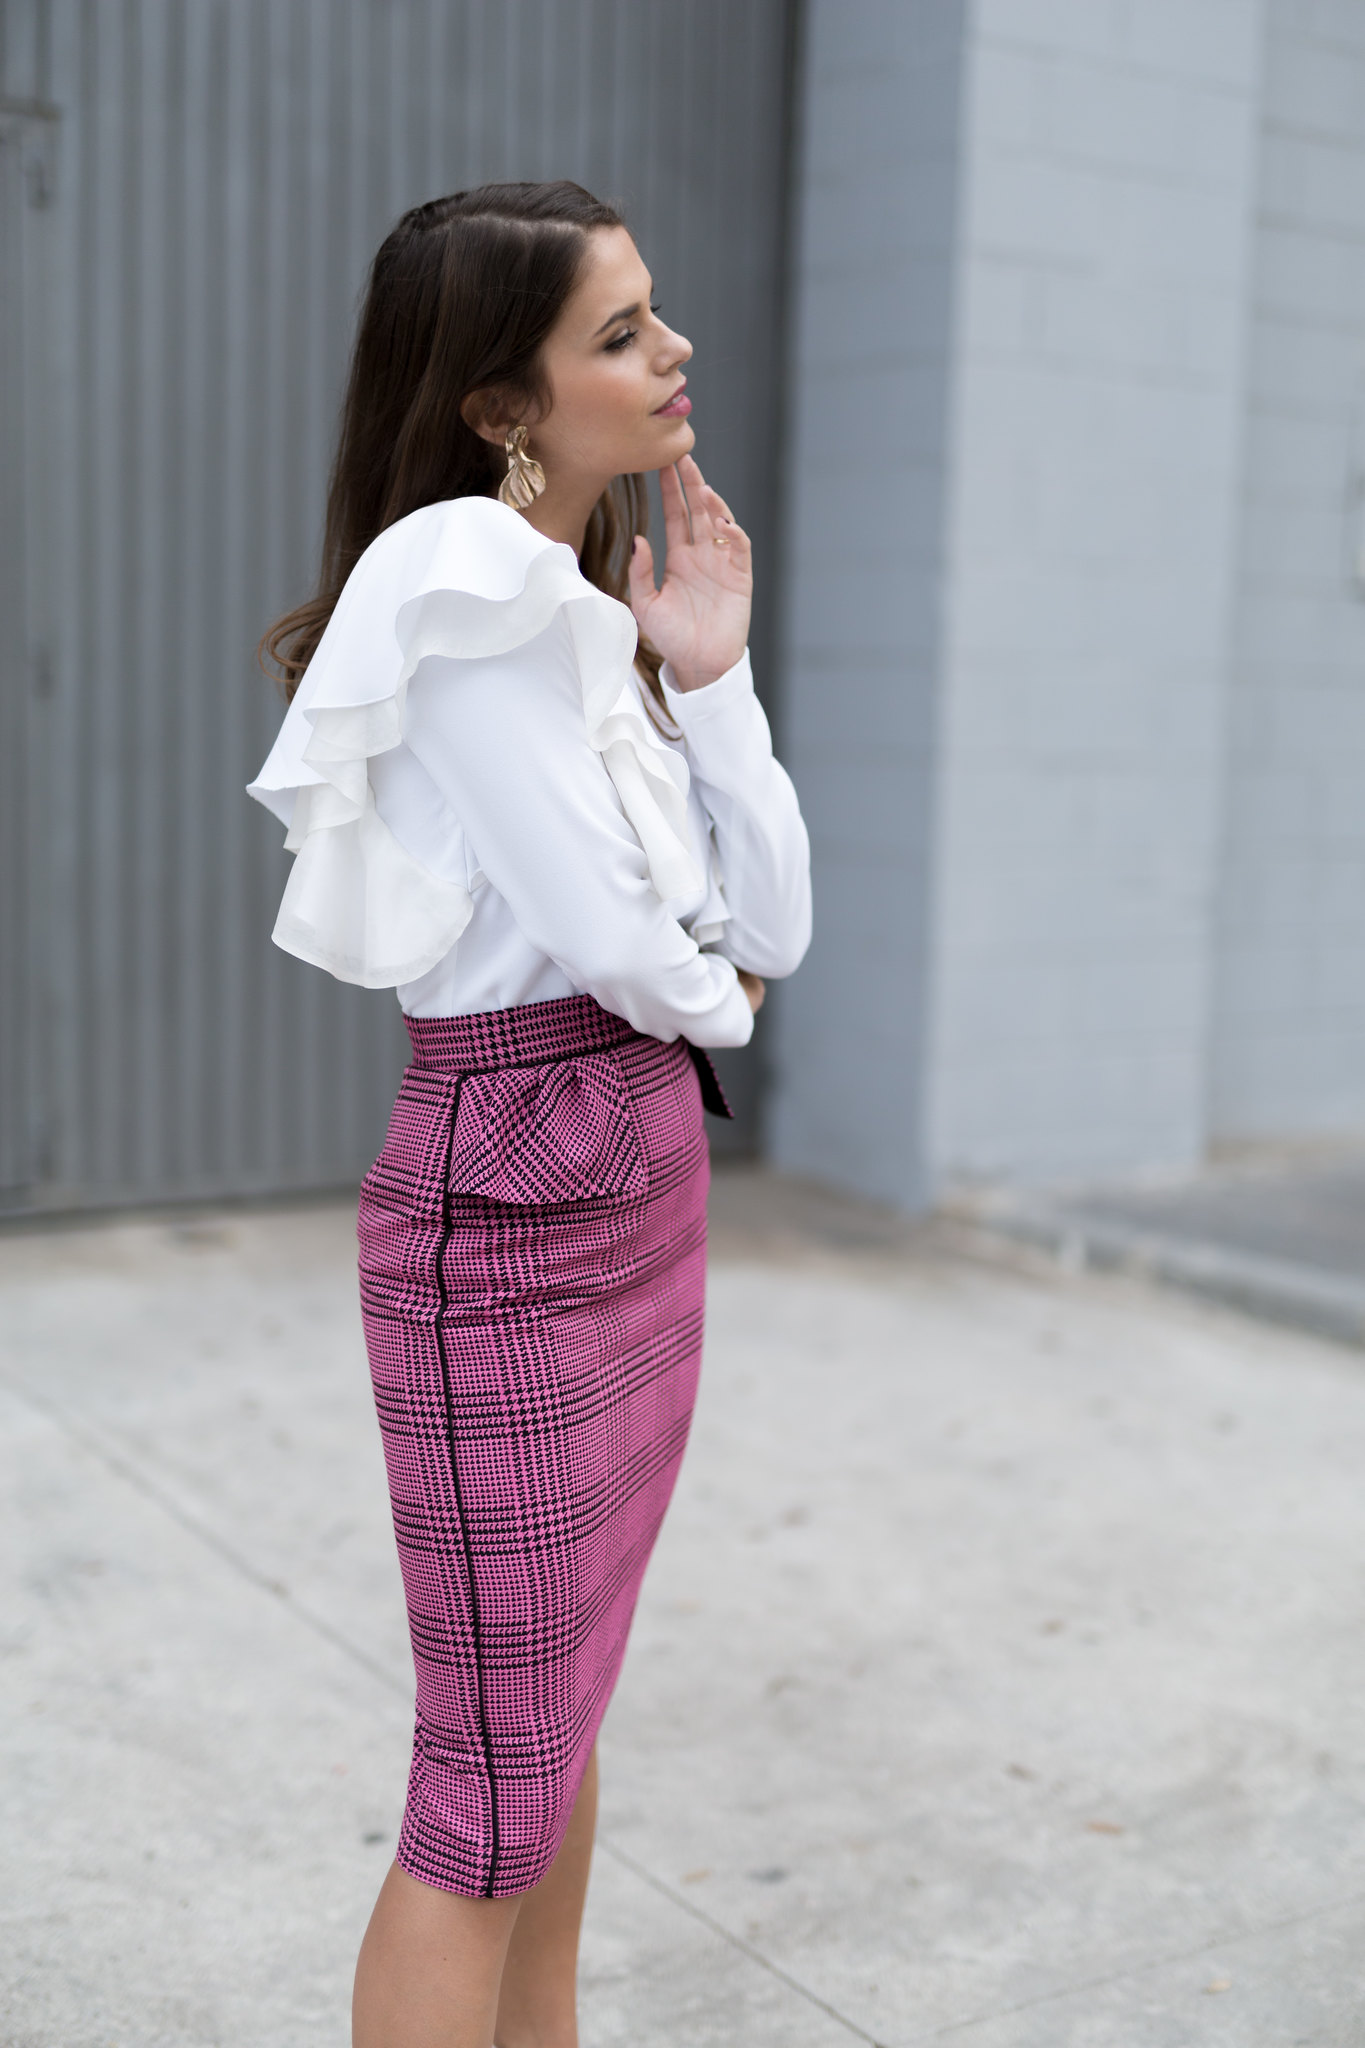 Jessie Chanes Seams for a desire - pink black houndstooth skirt white top apparentia -13